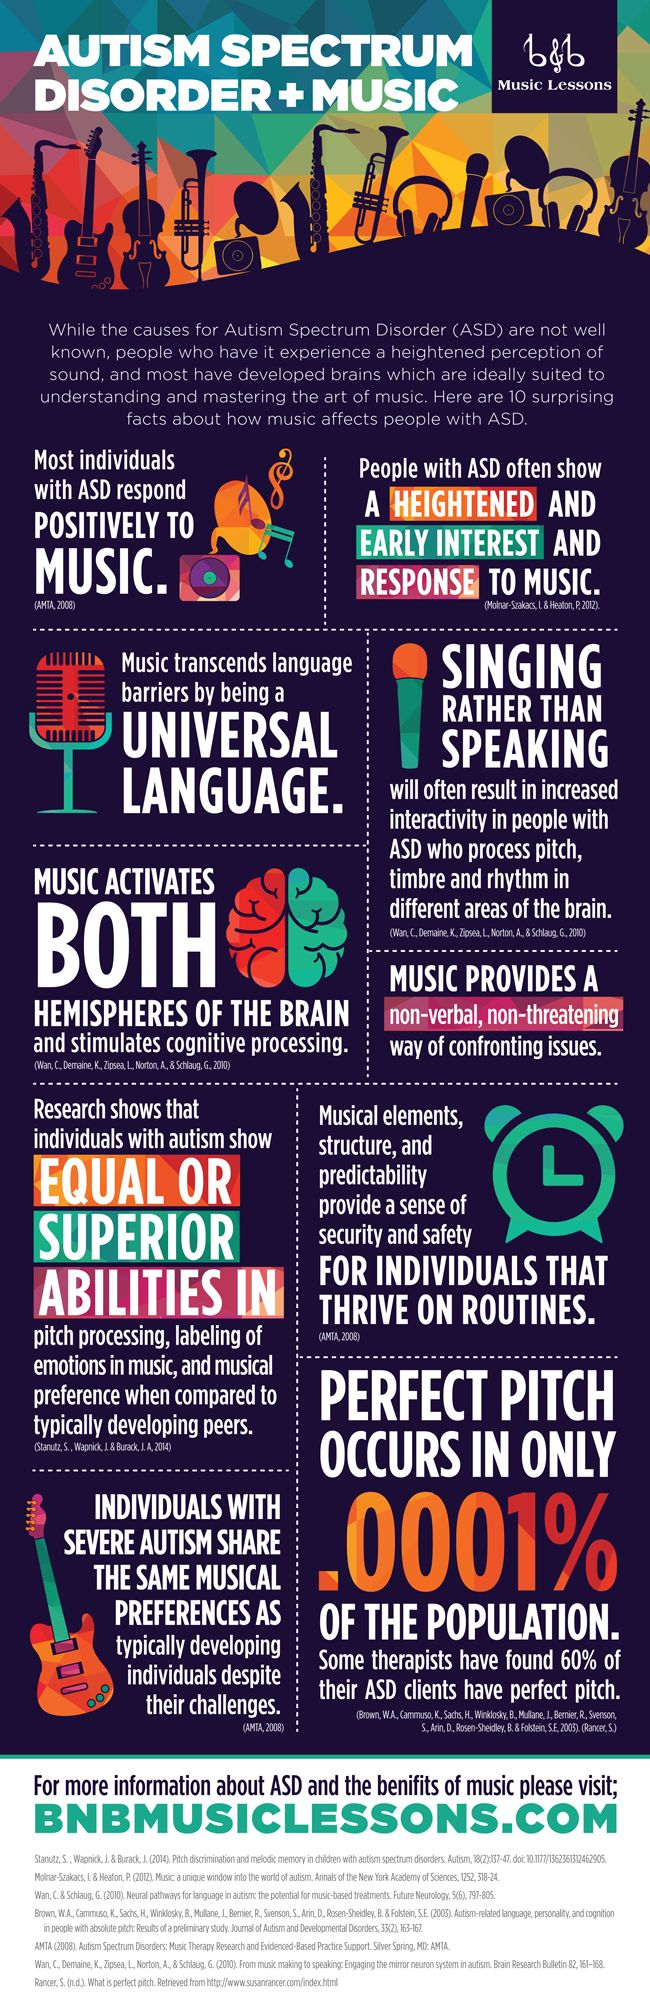 Music education proves to be especially helpful to those with Autism Spectrum Disorder. Autism and music go hand and hand when thoughtfully implemented.